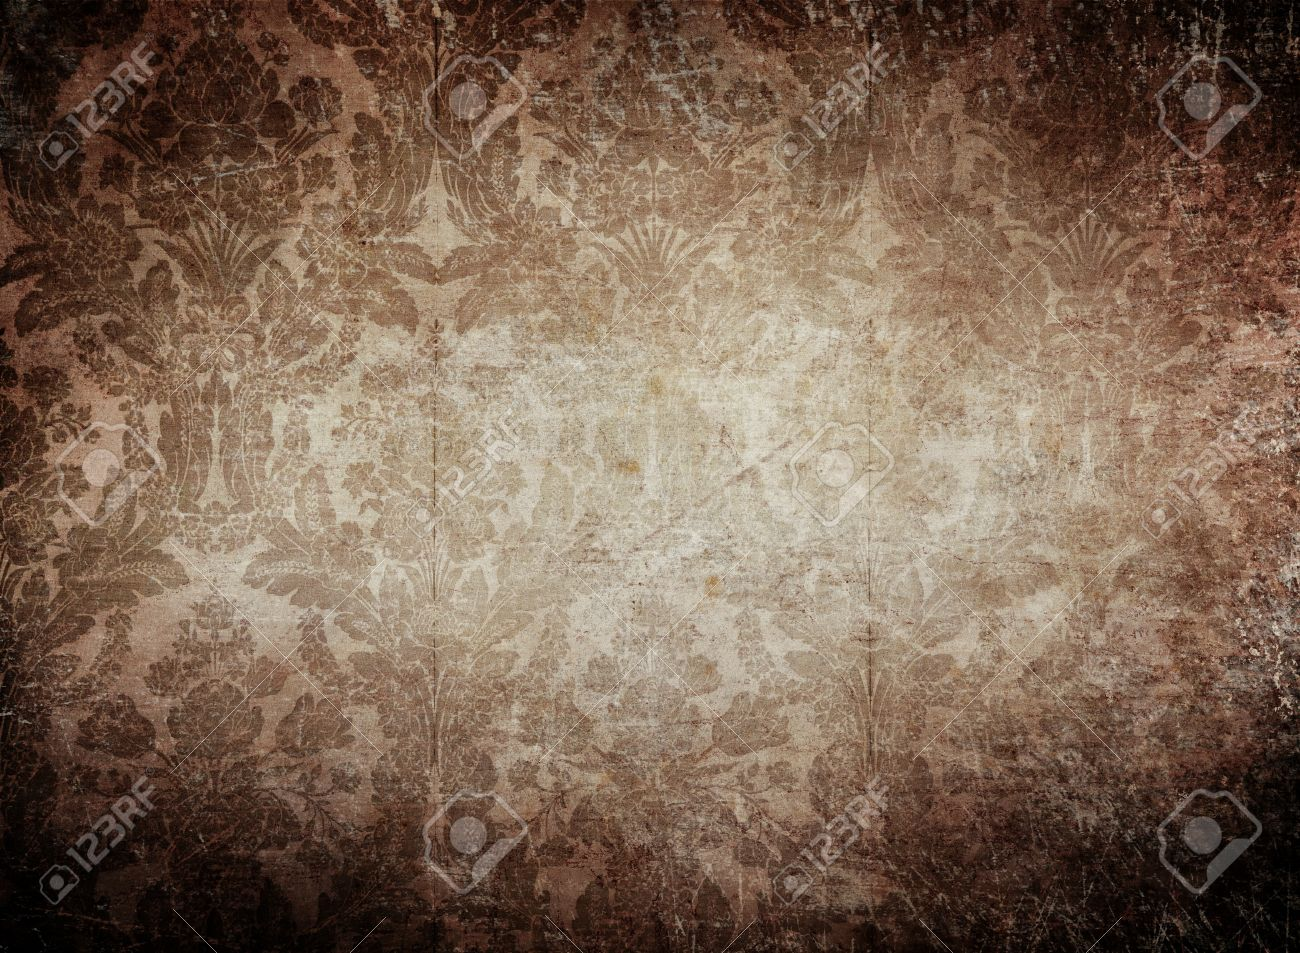 Grunge Vintage Wallpaper Background With Classy Pattern Stock Photo